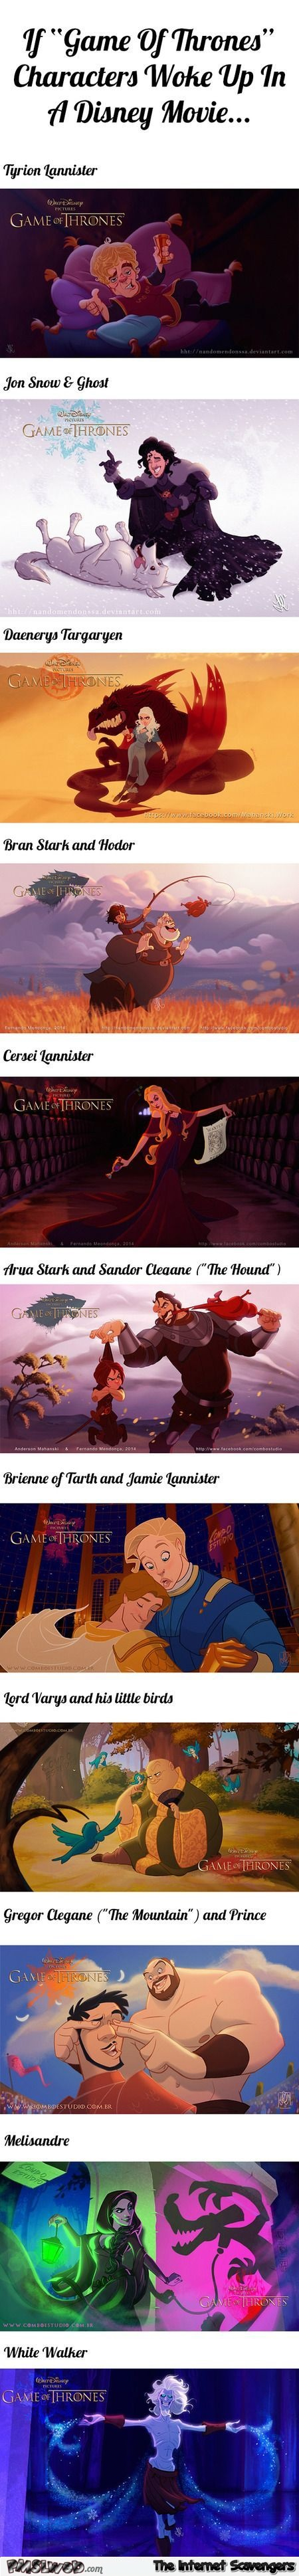 Funny Disney versions of Game of Thrones characters – Game of Thrones humor @PMSLweb.com